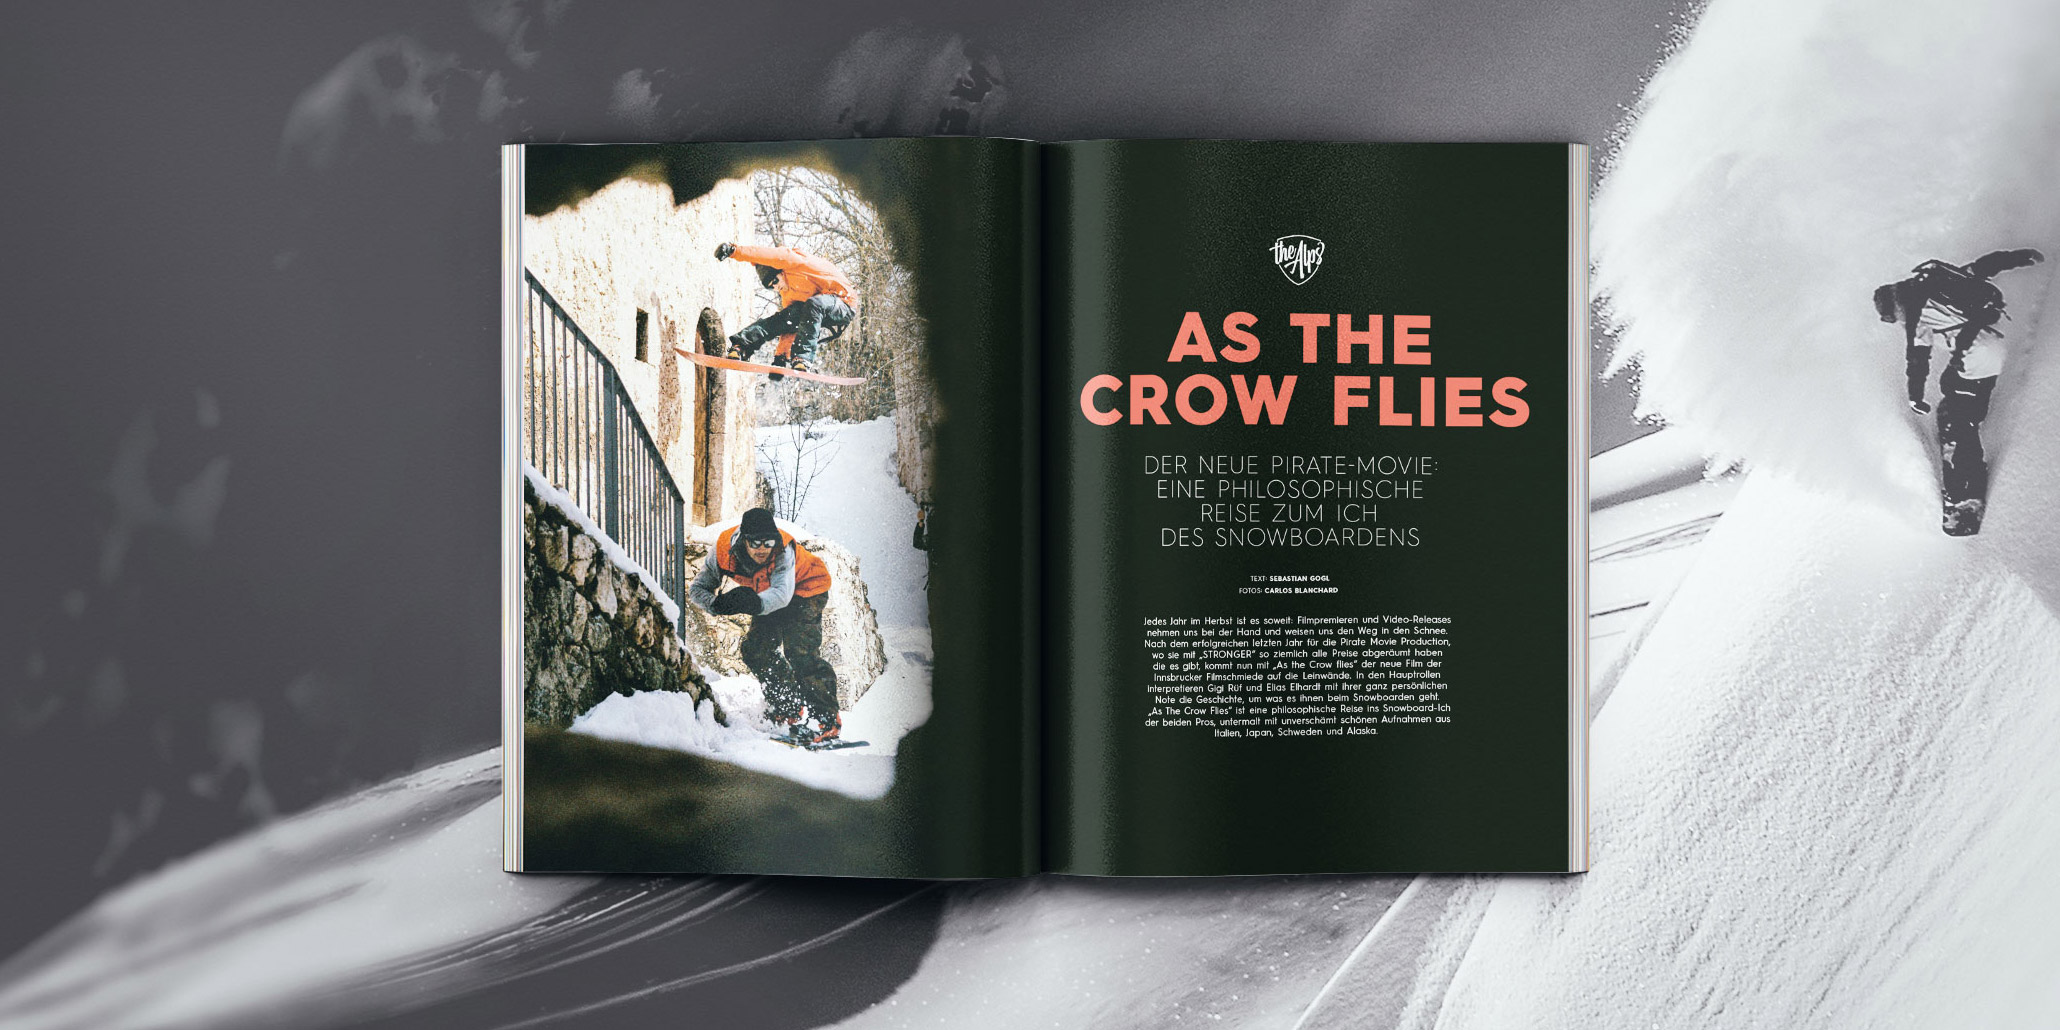 As the Crow flies – mit Gigi Rüf, Elias Elhardt, Kazu Kokubo & Toni Kerkelä